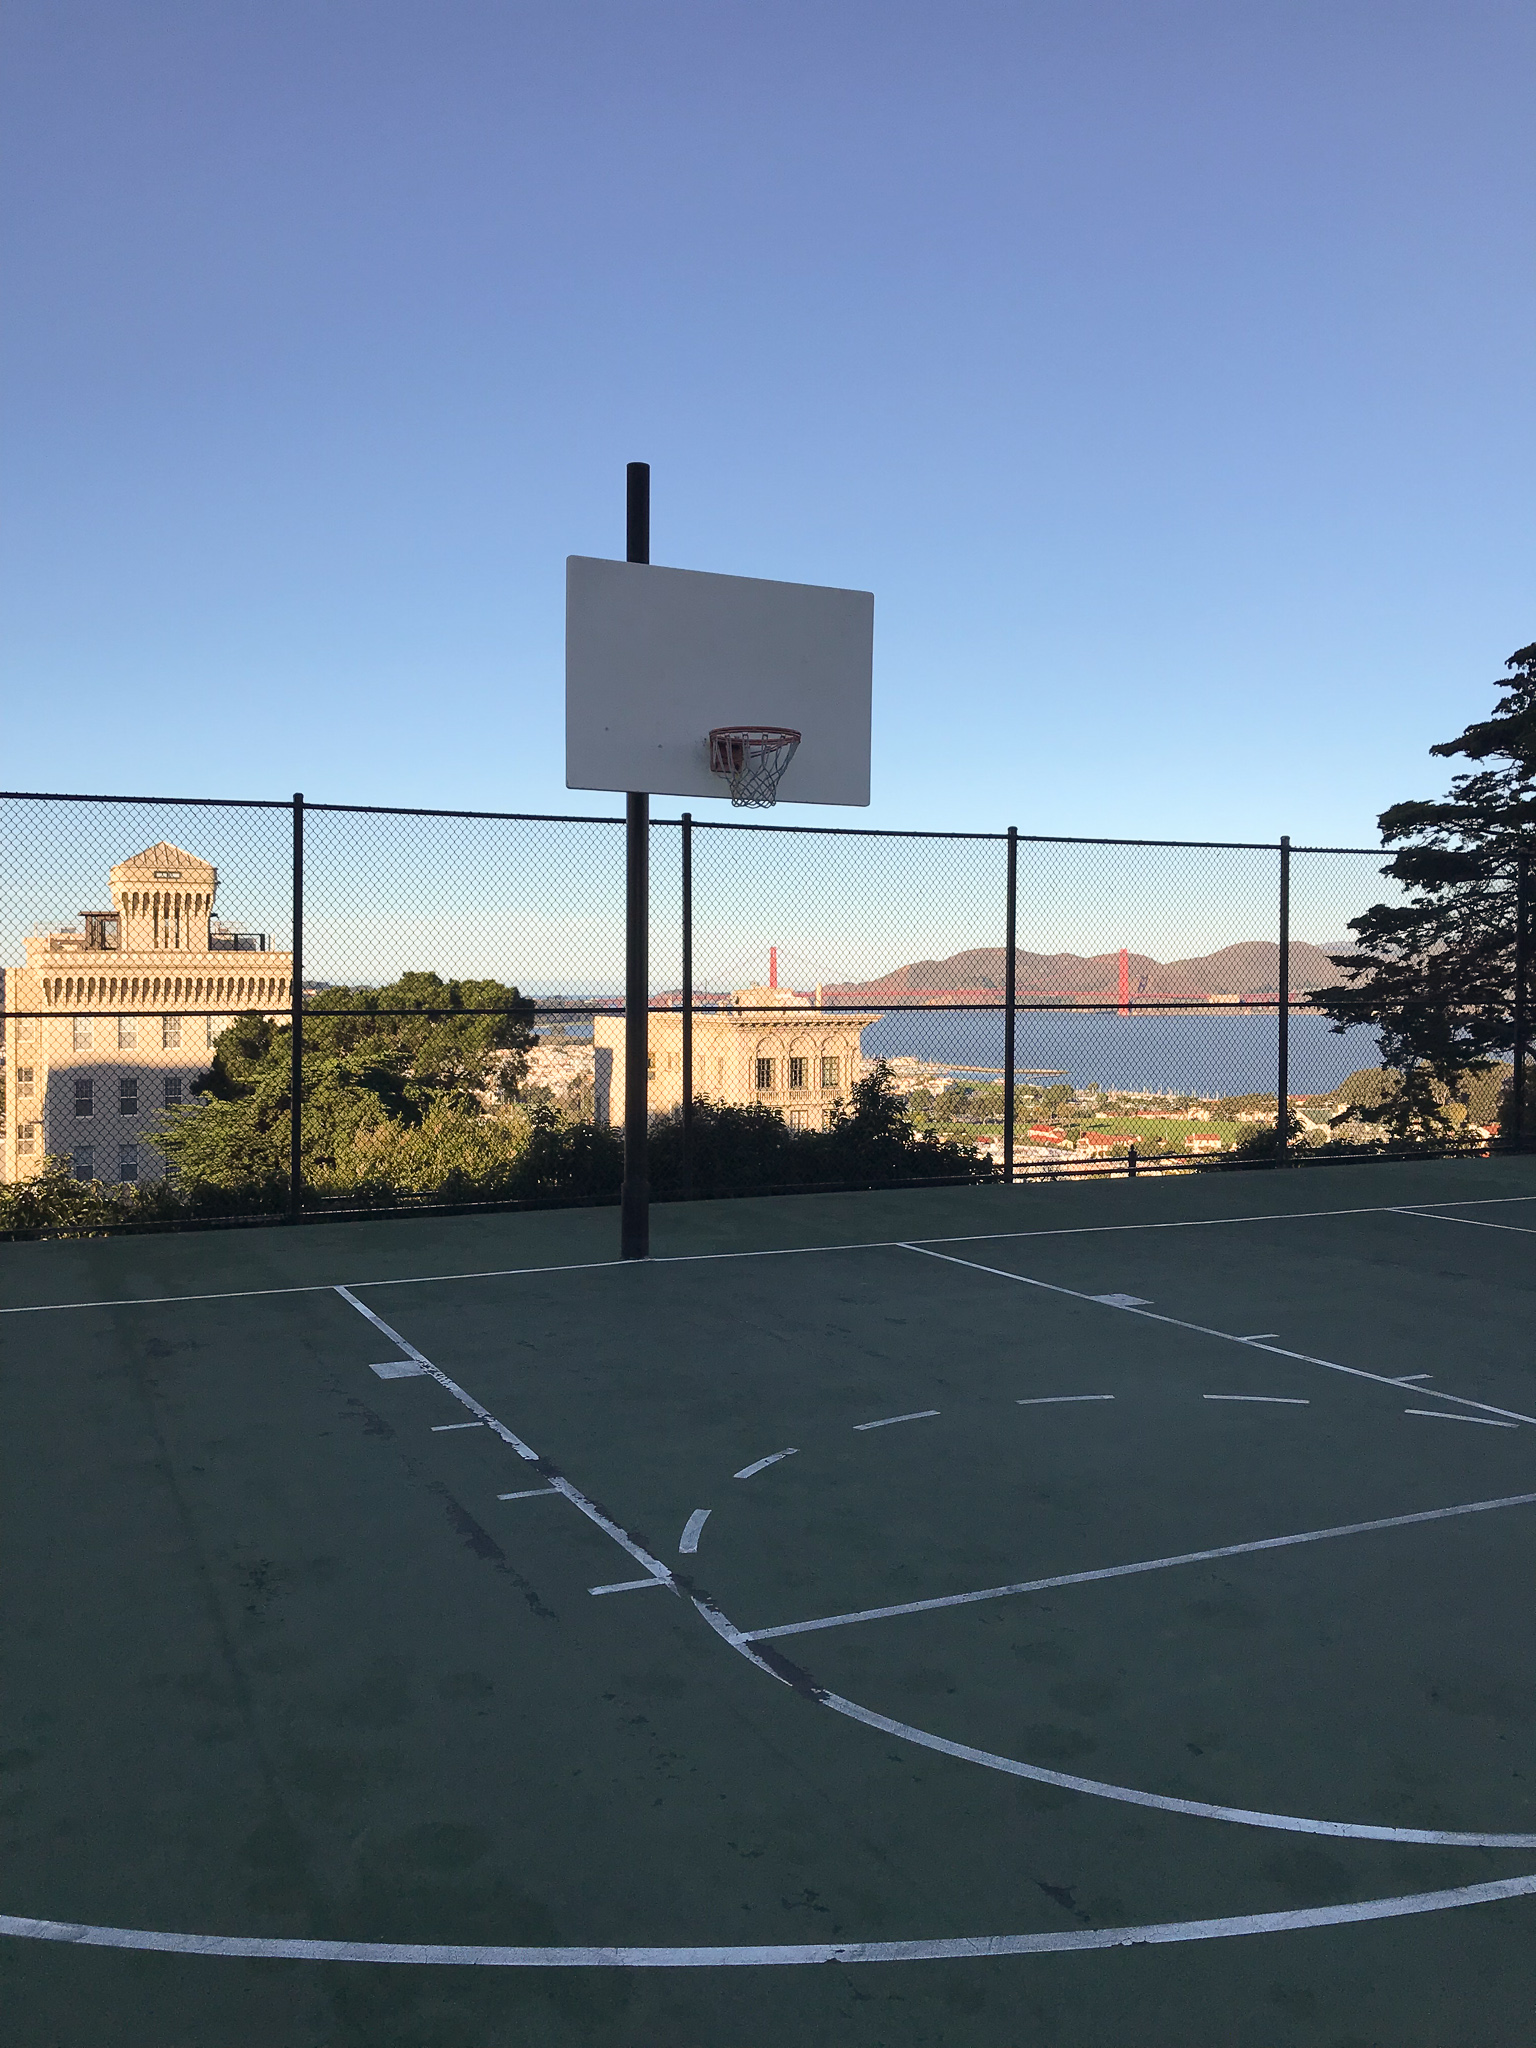 Ball Out Here Basketball Courts San Francisco